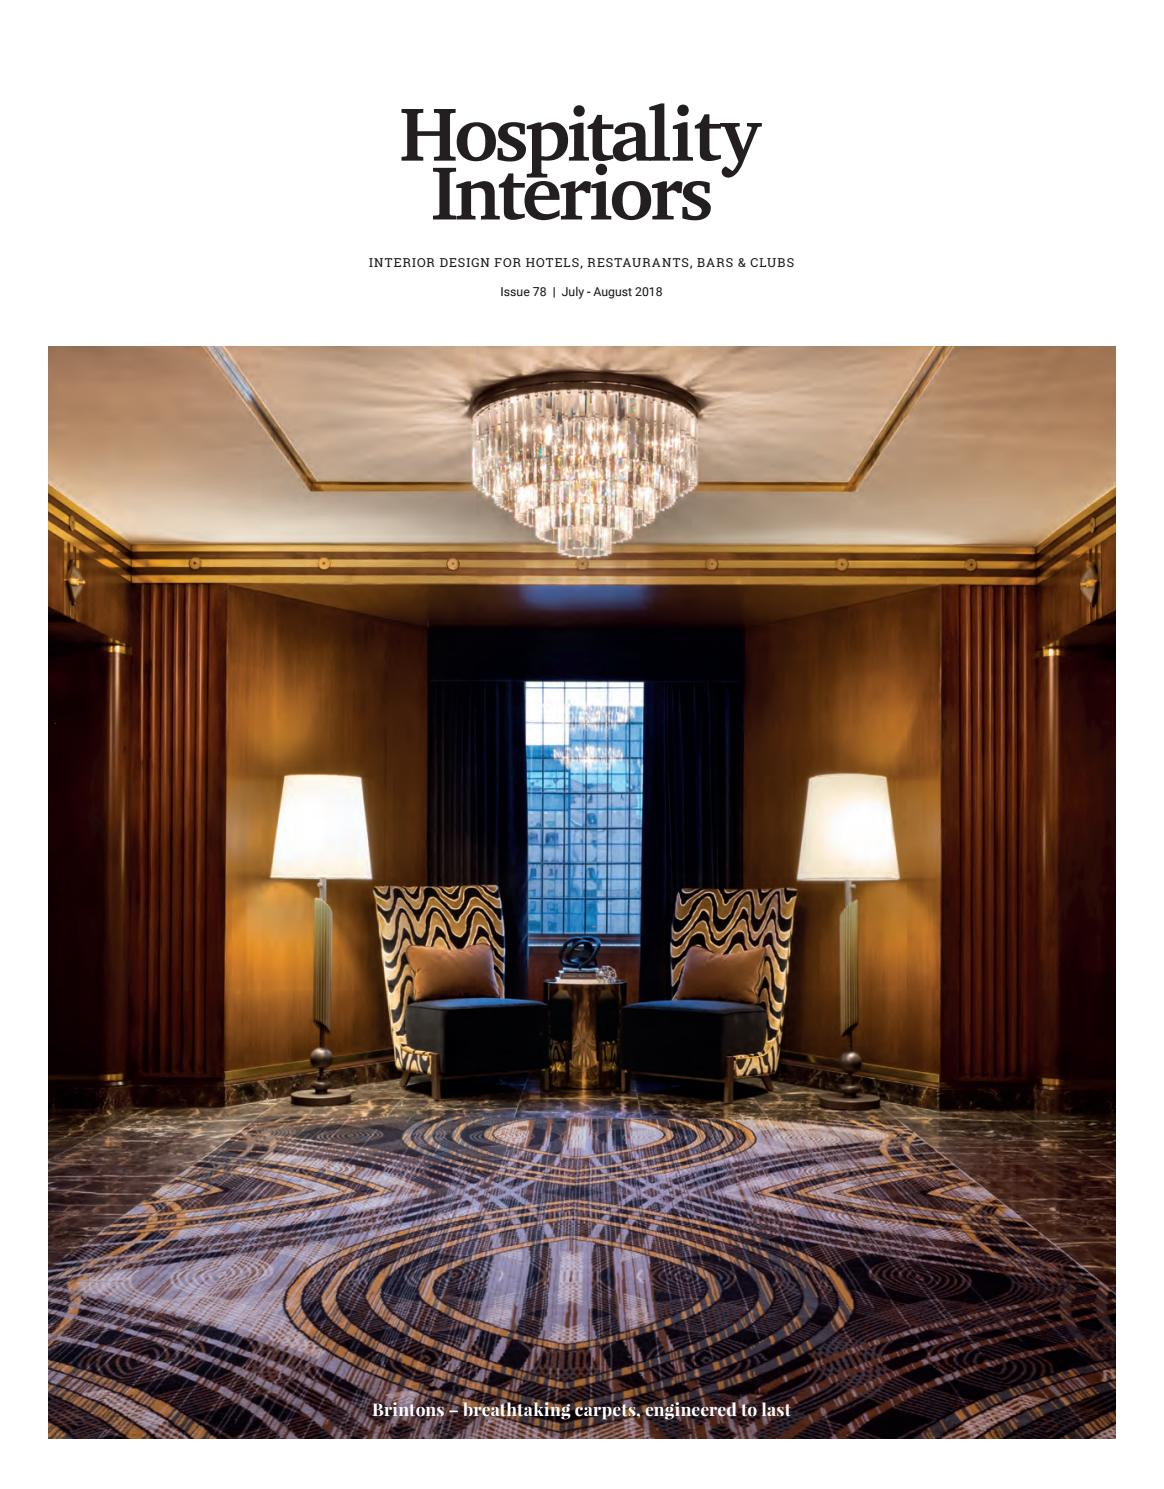 Hospitality interiors 78 by gearing media group ltd issuu